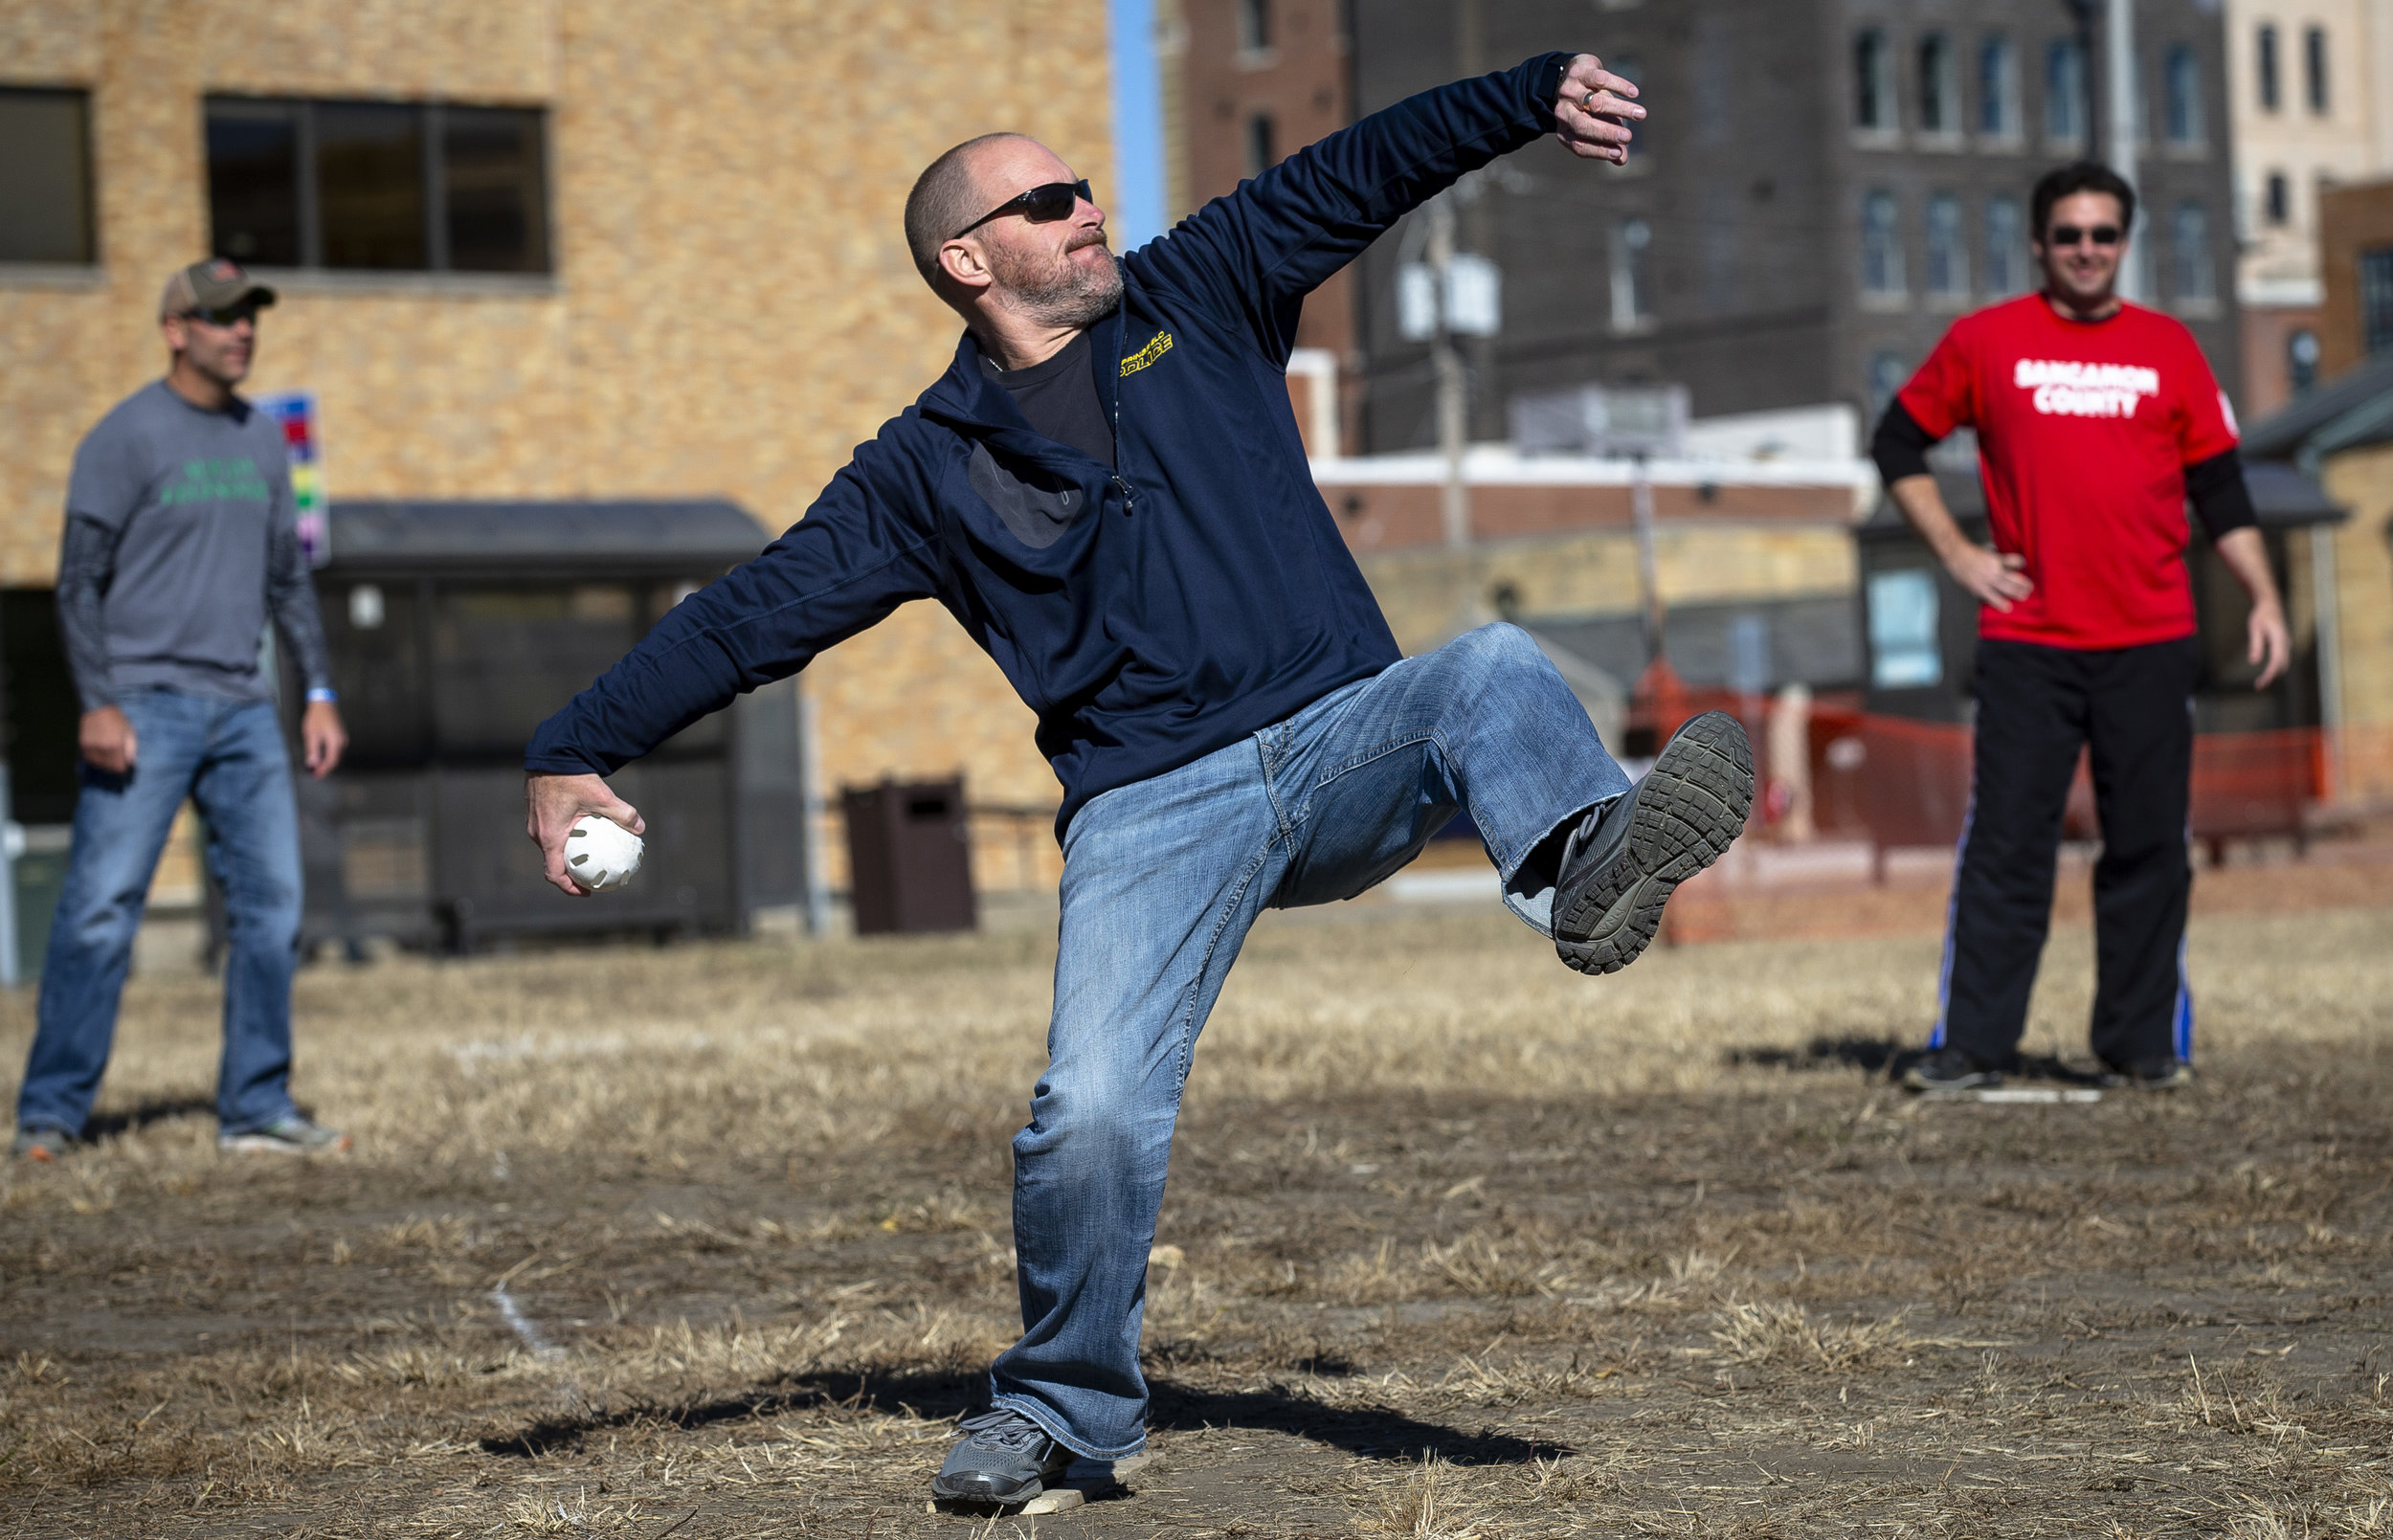 Springfield Police Assistant Chief Dyle Stokes winds up for the pitch in a whiffle ball game between city and county officials on the former YWCA block Sunday, Oct. 21, 2018  in Springfield, Ill. Money raised will benefit the Land of Lincoln Honor Flight.[Rich Saal/The State Journal-Register]